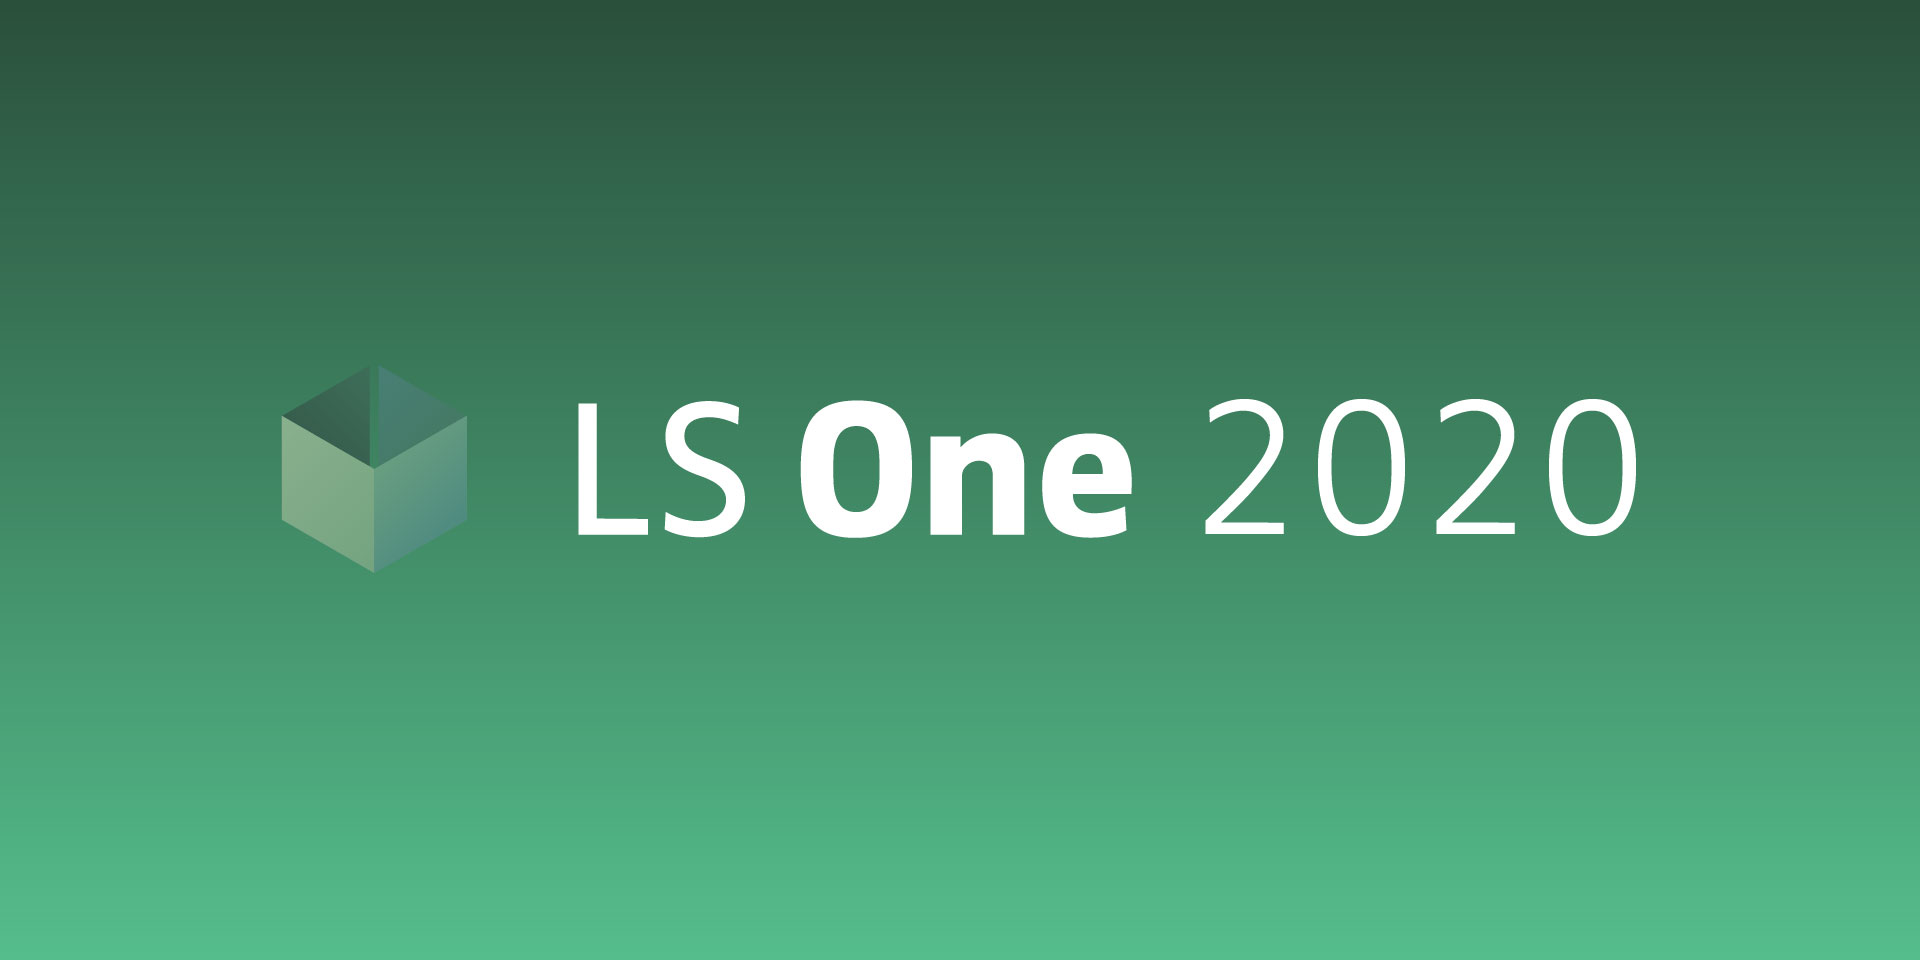 LS One 2020: entirely new UI, greater usability, even better integration to SAP Business One